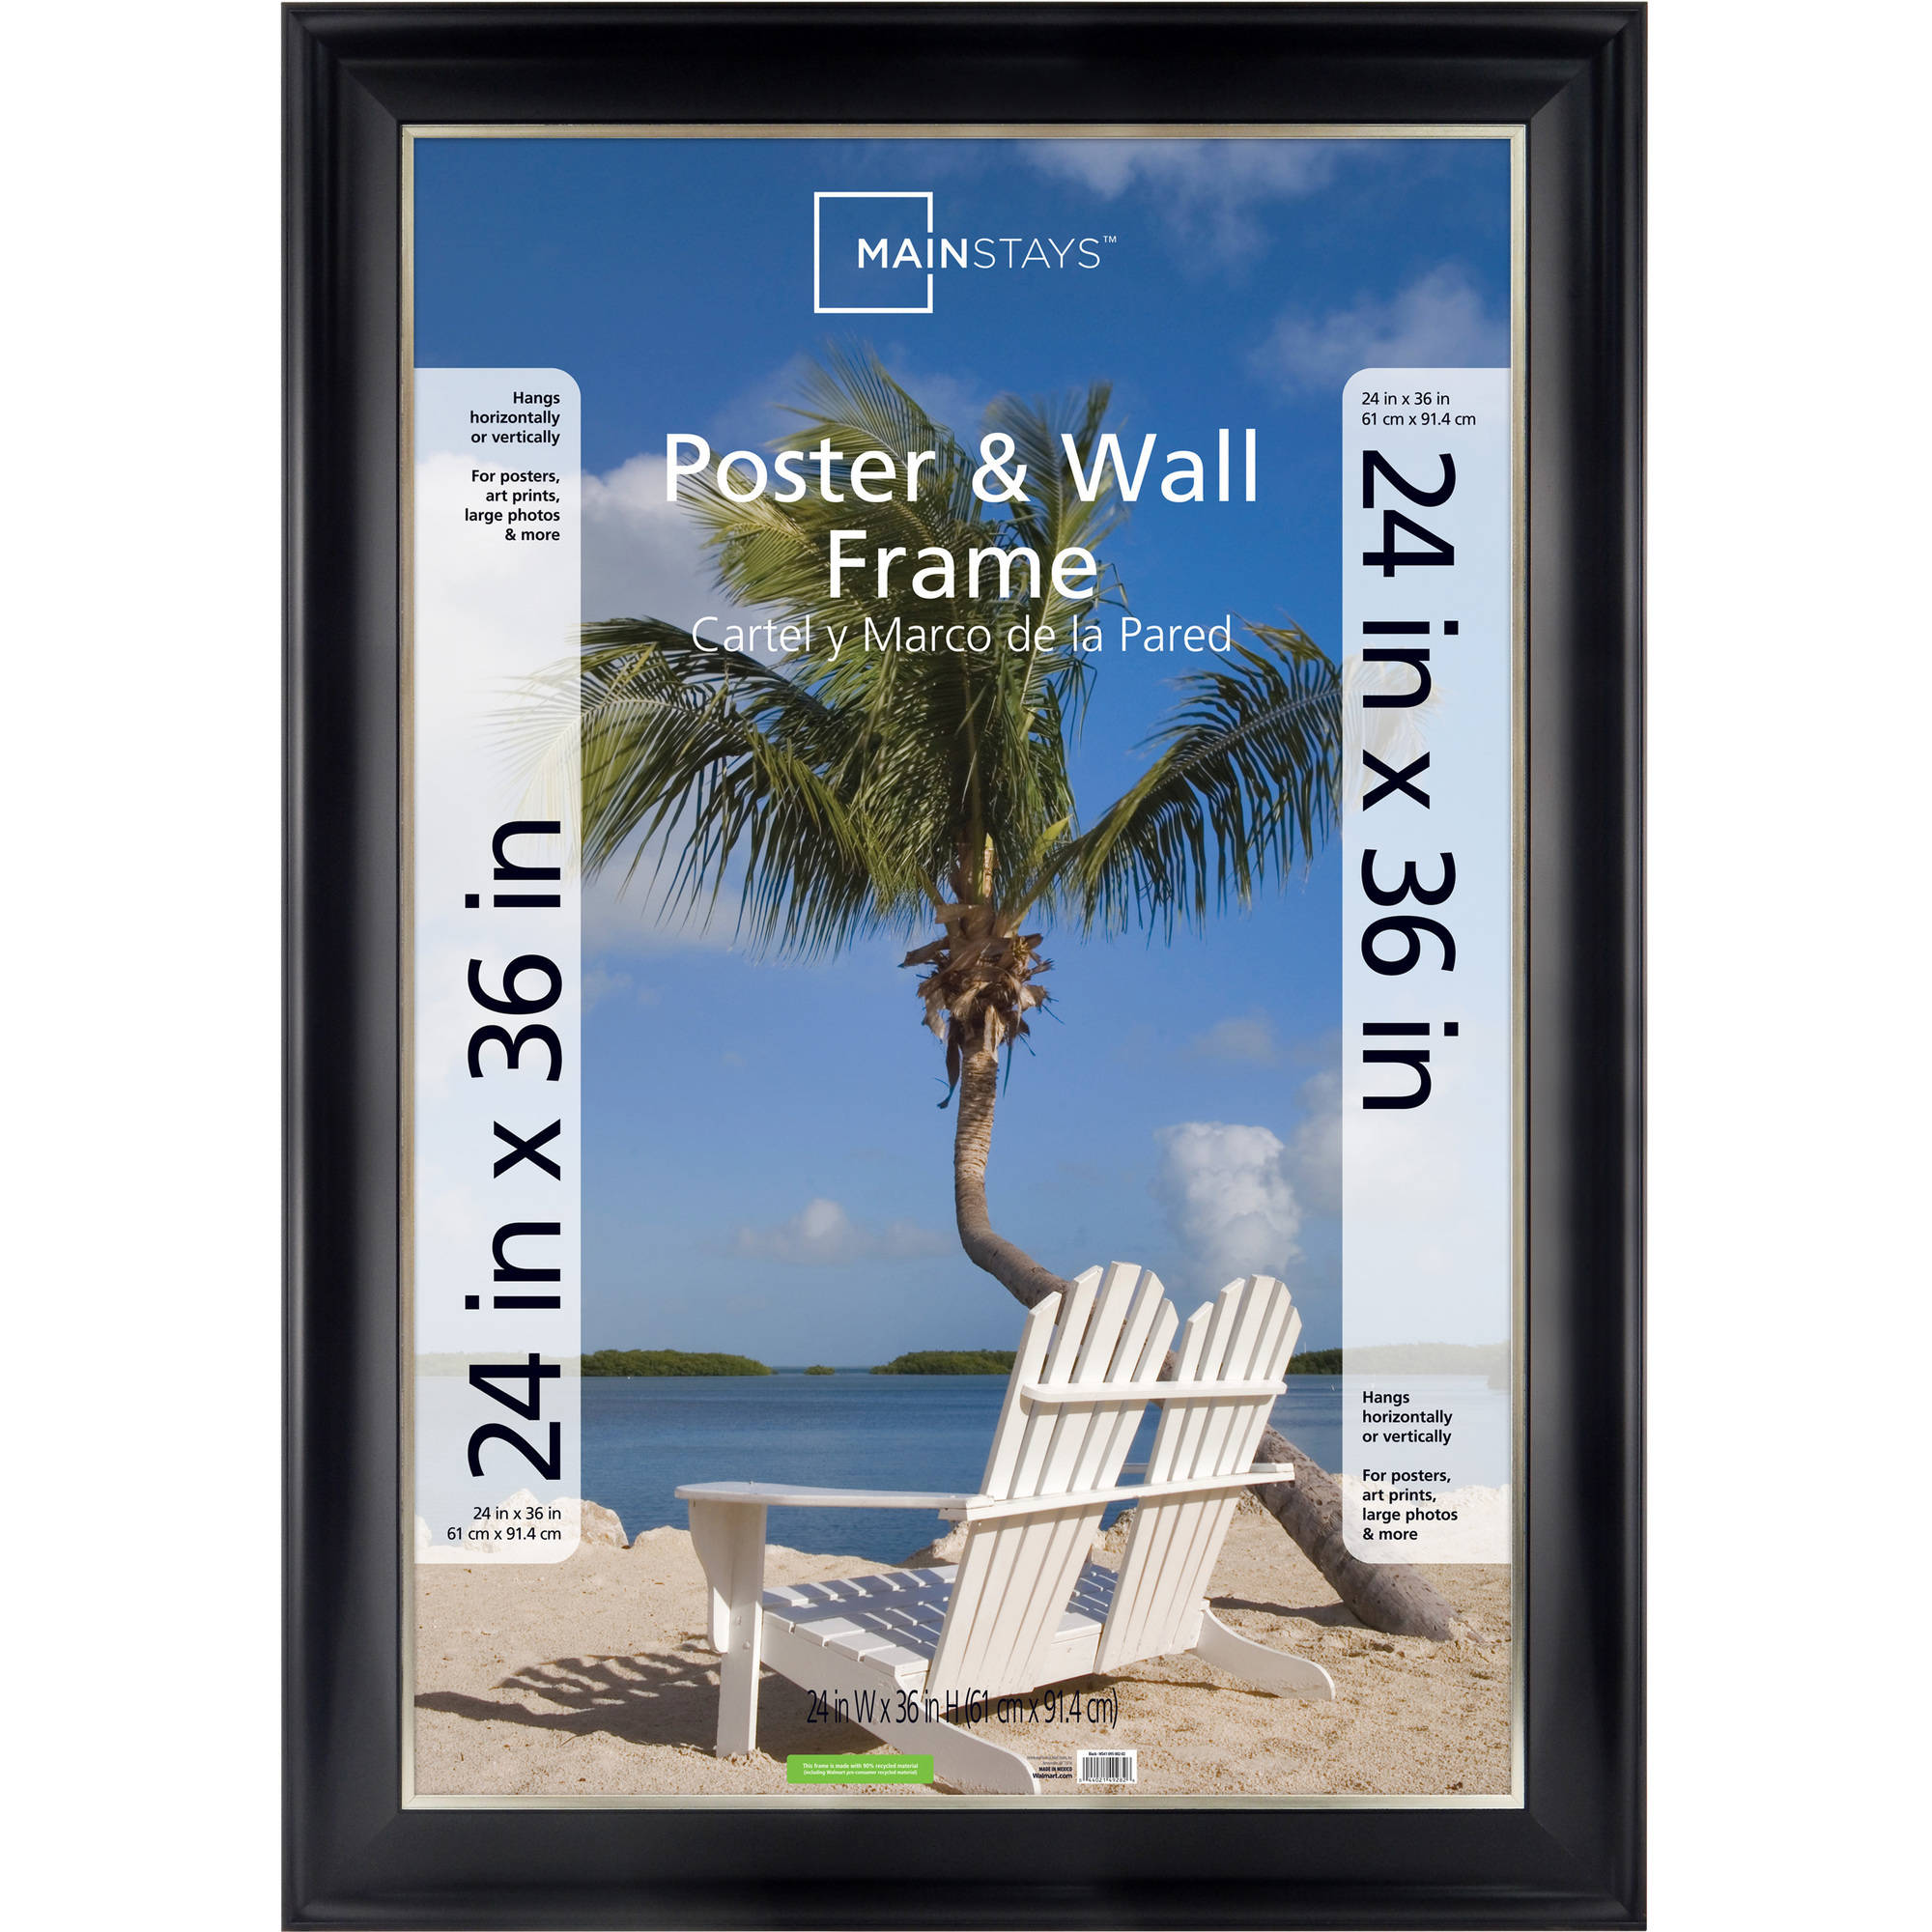 mainstays 24x36 2 tone poster frame black with champagne walmartcom